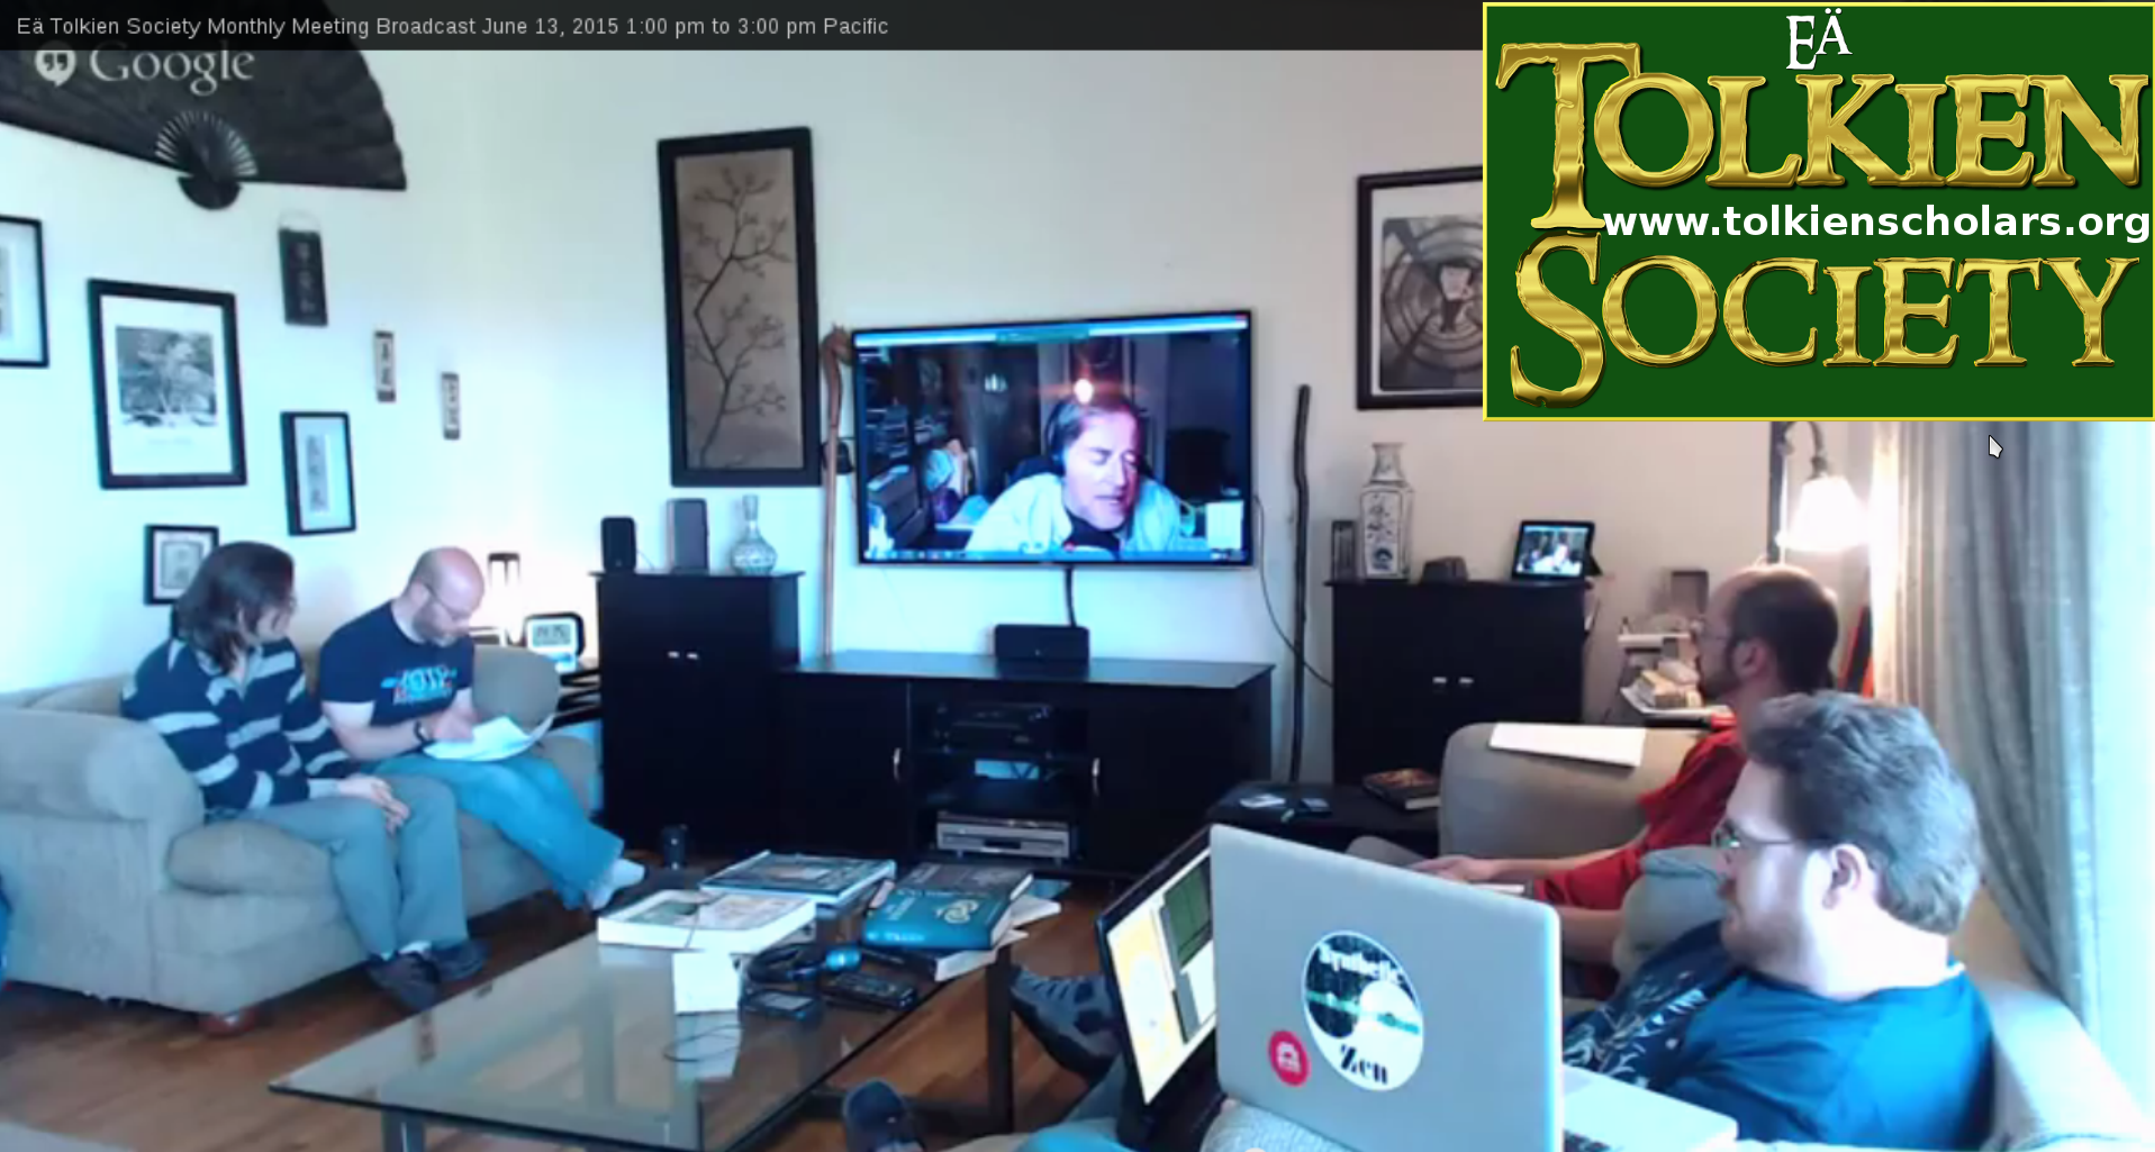 Eä Tolkien Society February 2016 Meeting Notes